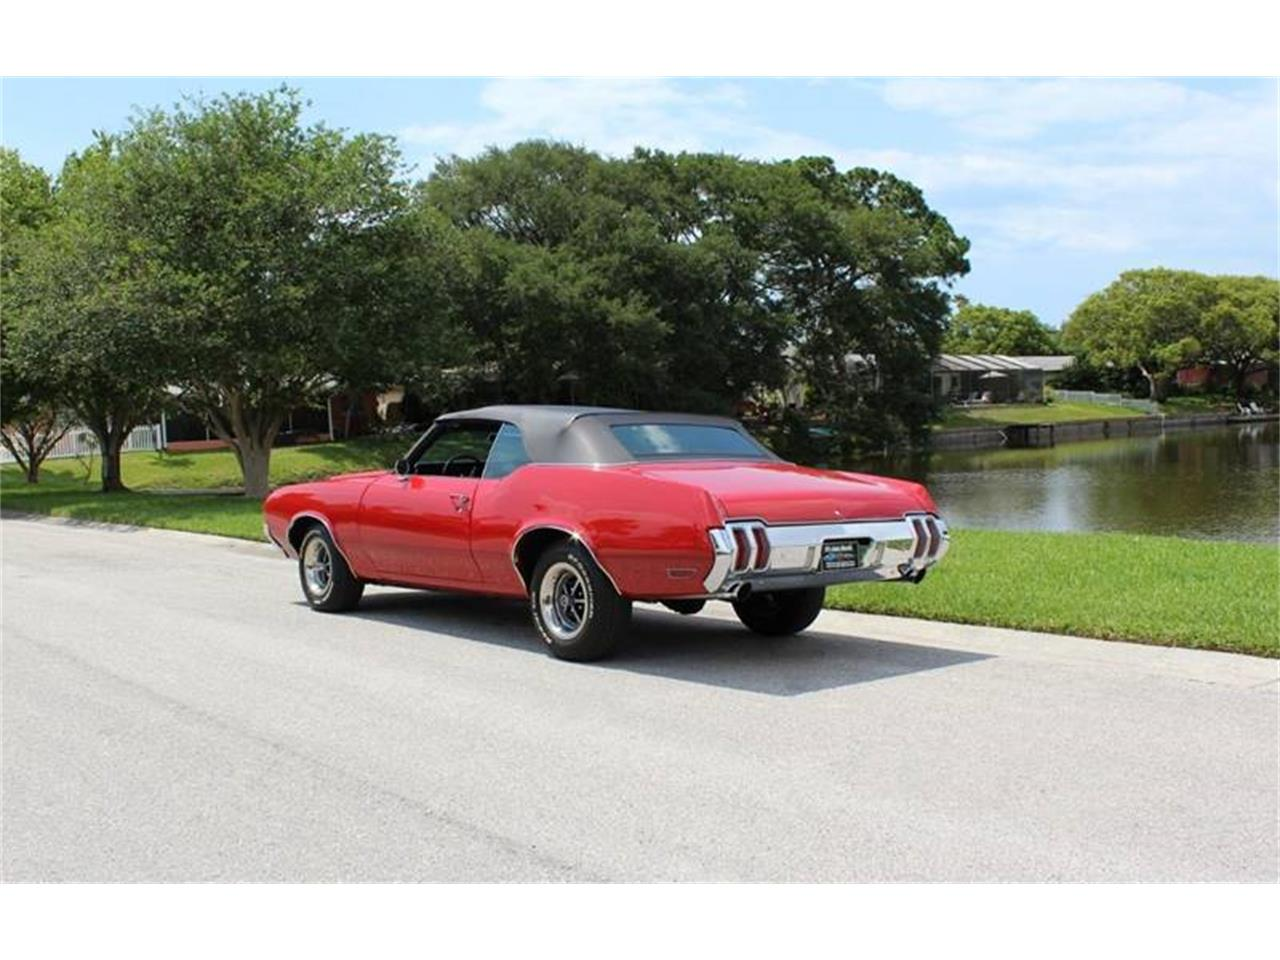 Large Picture of Classic 1970 Oldsmobile Cutlass located in Florida - $32,900.00 - Q478